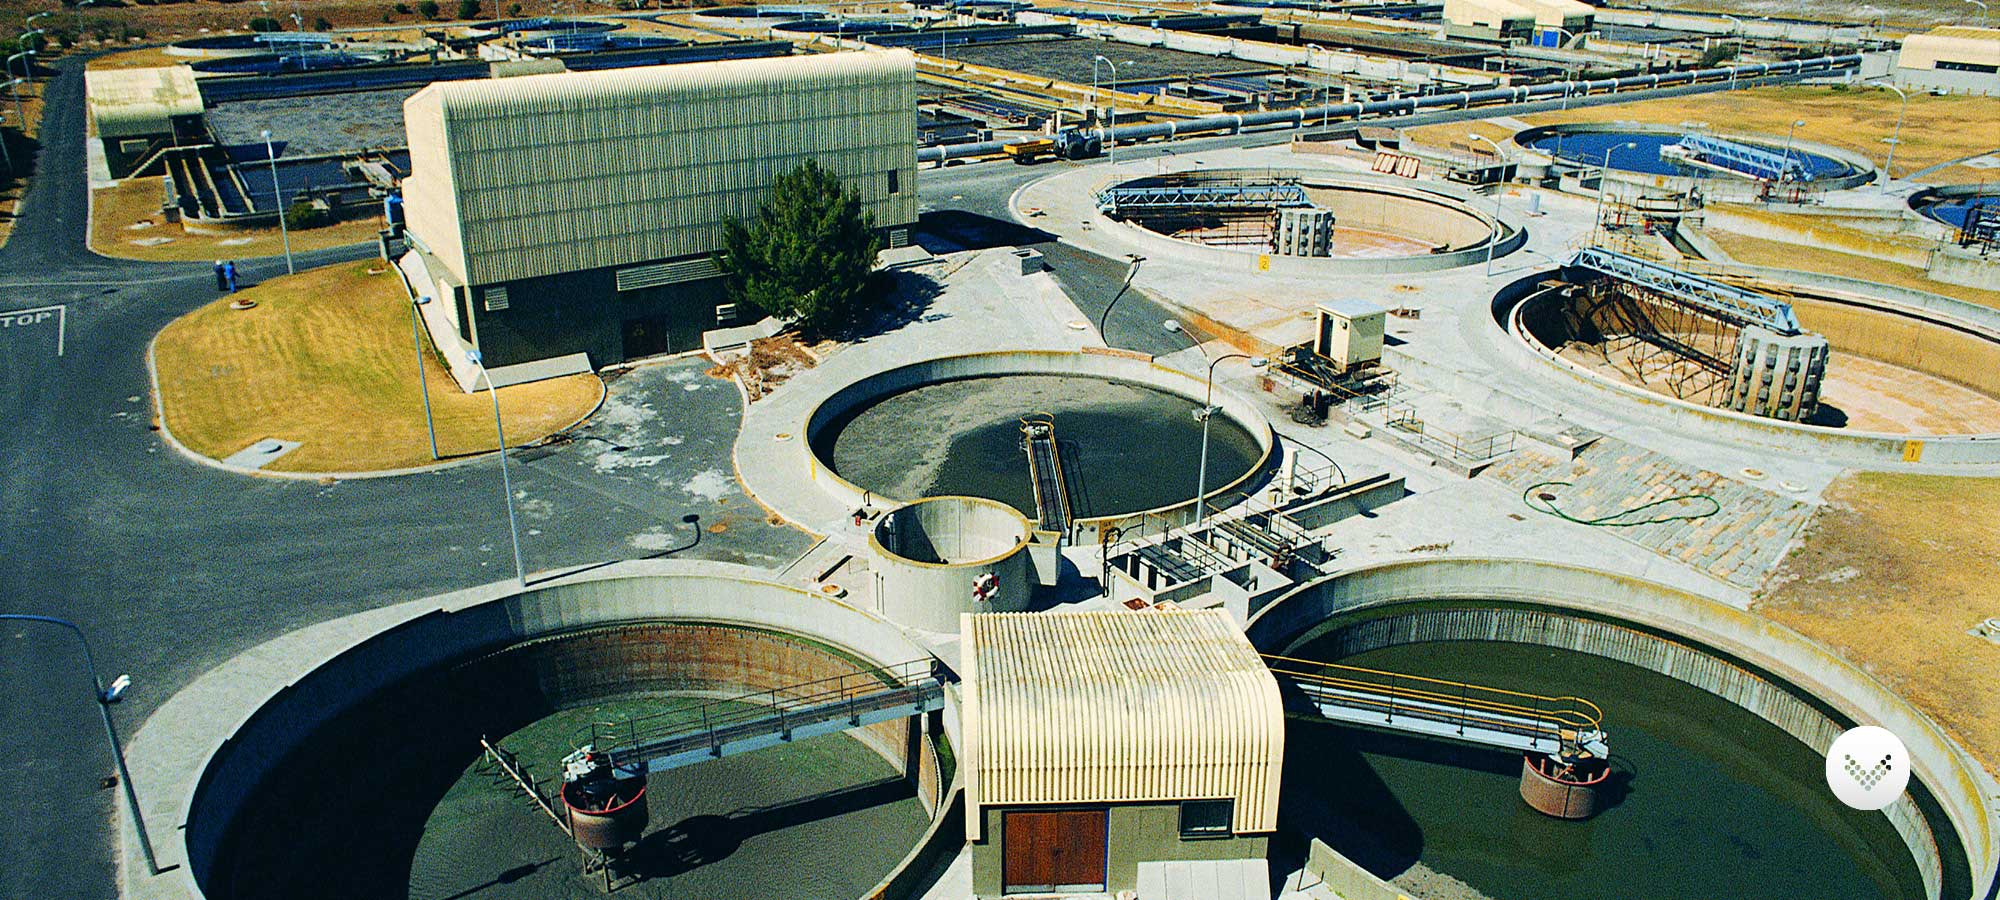 Waste water treatment plant seen from an aerial view featuring multiple collection pools.